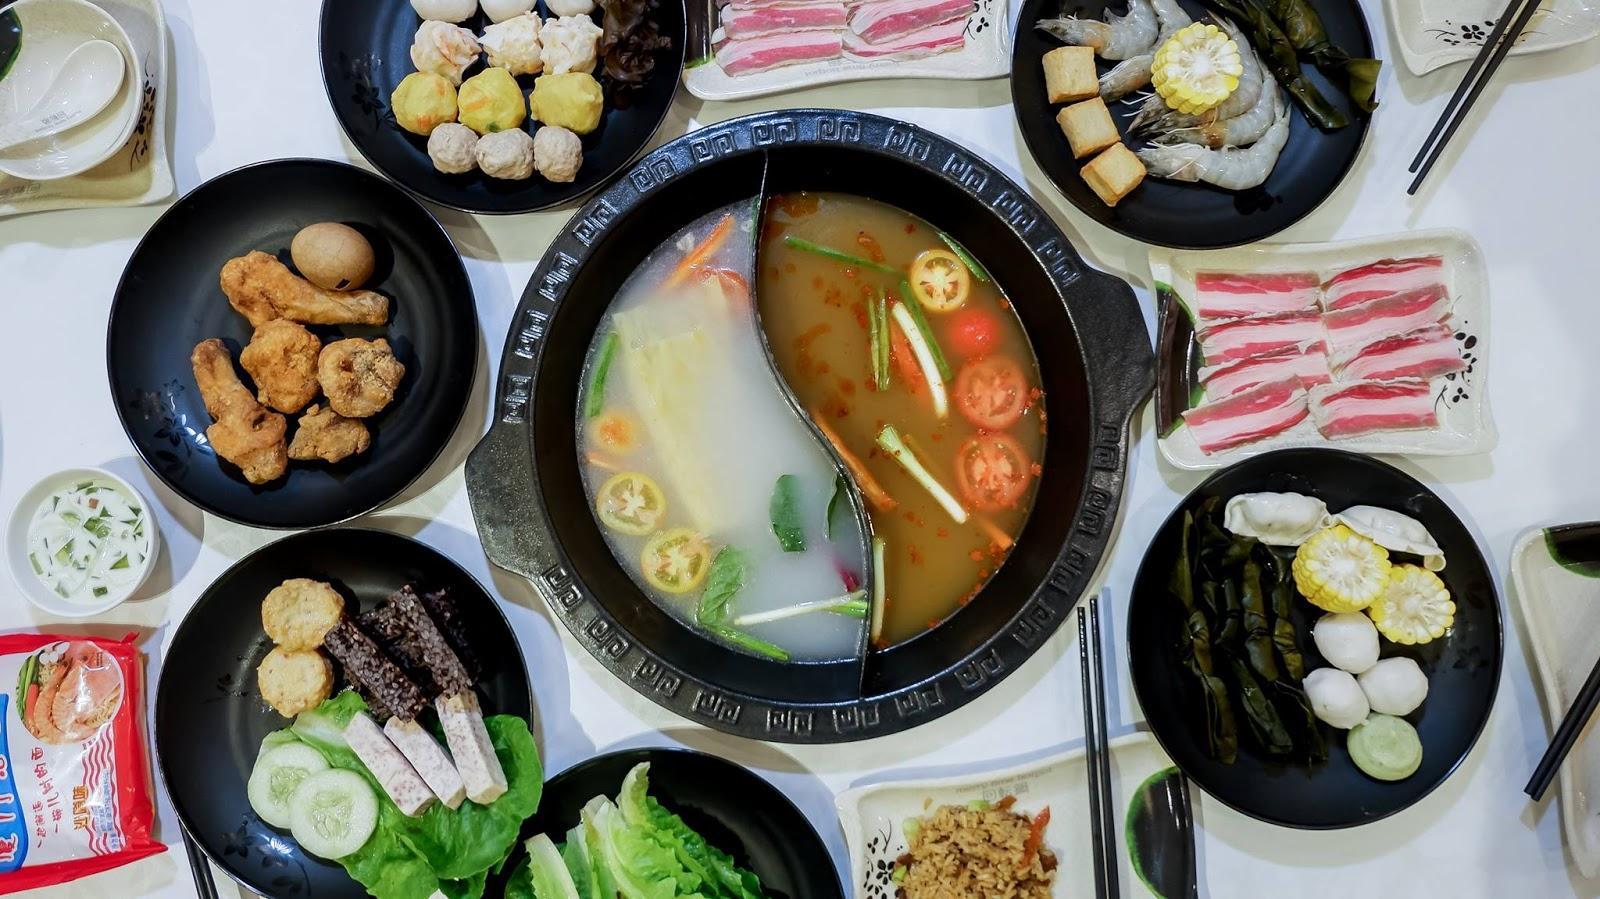 Merry Time Hotpot an Authentic eat-all-you-can Chinese Buffet Restaurant in CDO!